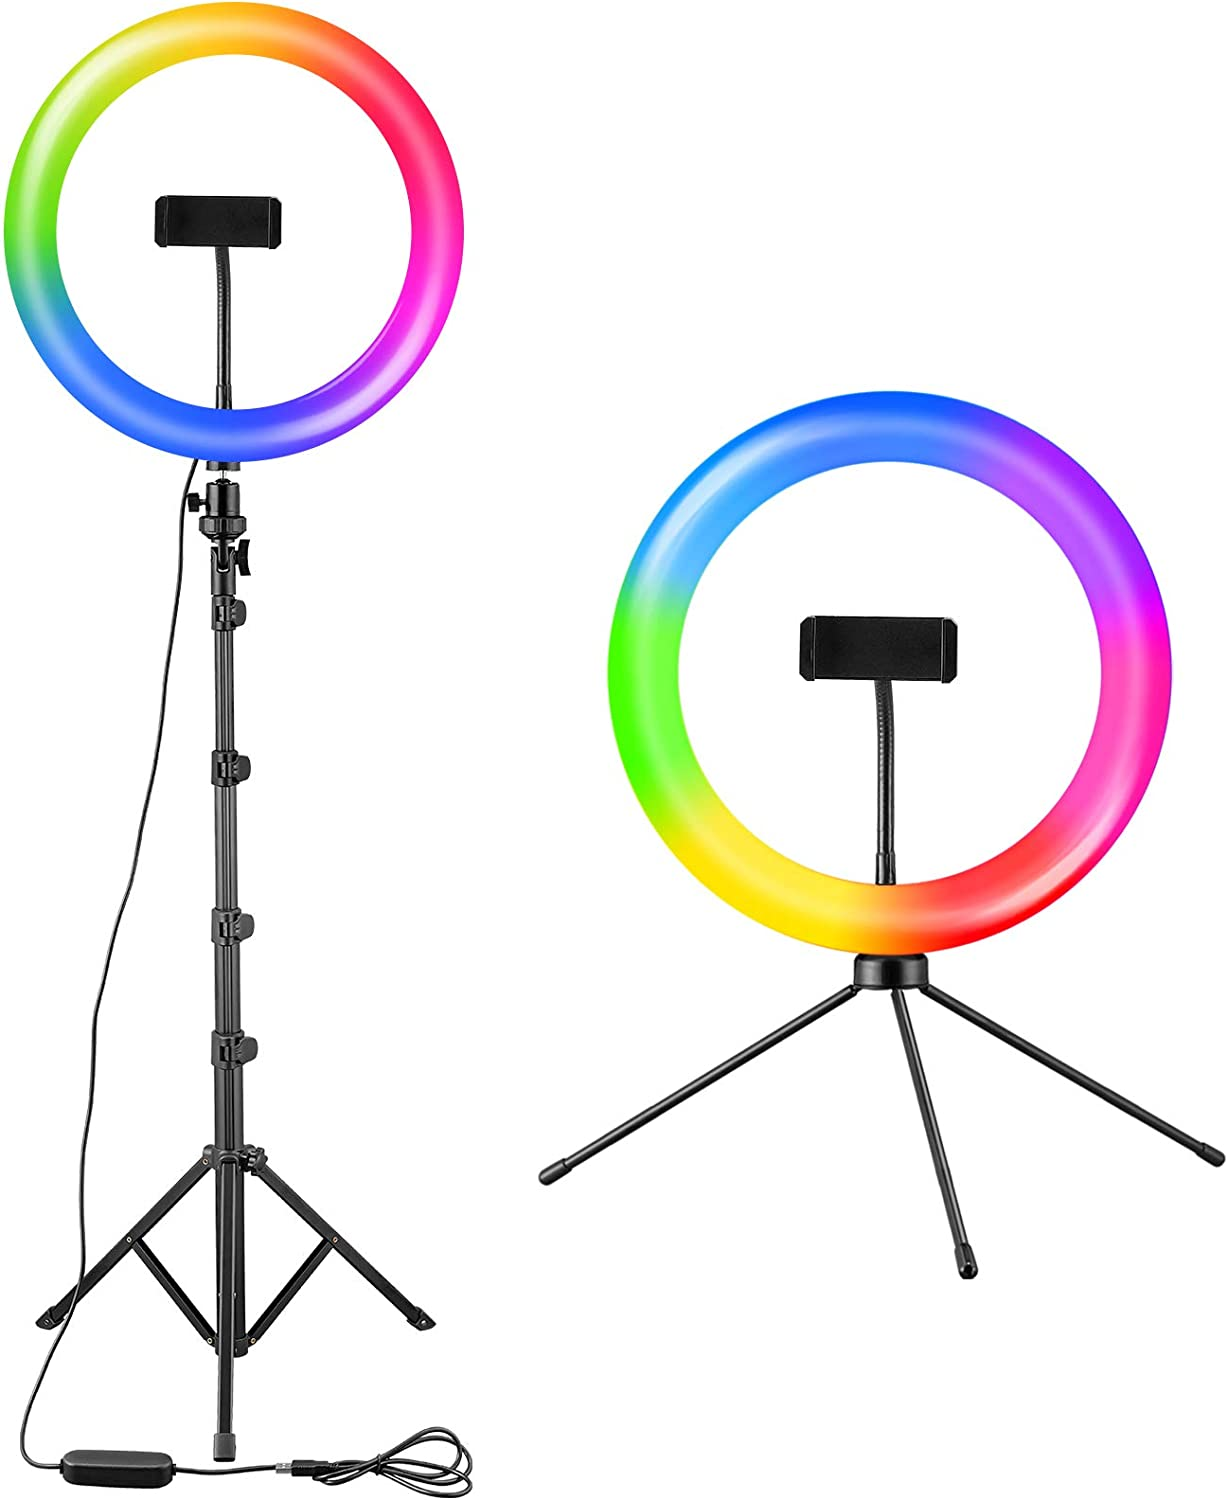 """10.2"""" RGB Selfie Ring Light with Two Tripod Stand and Phone Holder, 21 RGB Colors Dimmable LED Ring Light with Wireless Remote Control for Makeup, YouTube Video, Live Stream, Photography"""